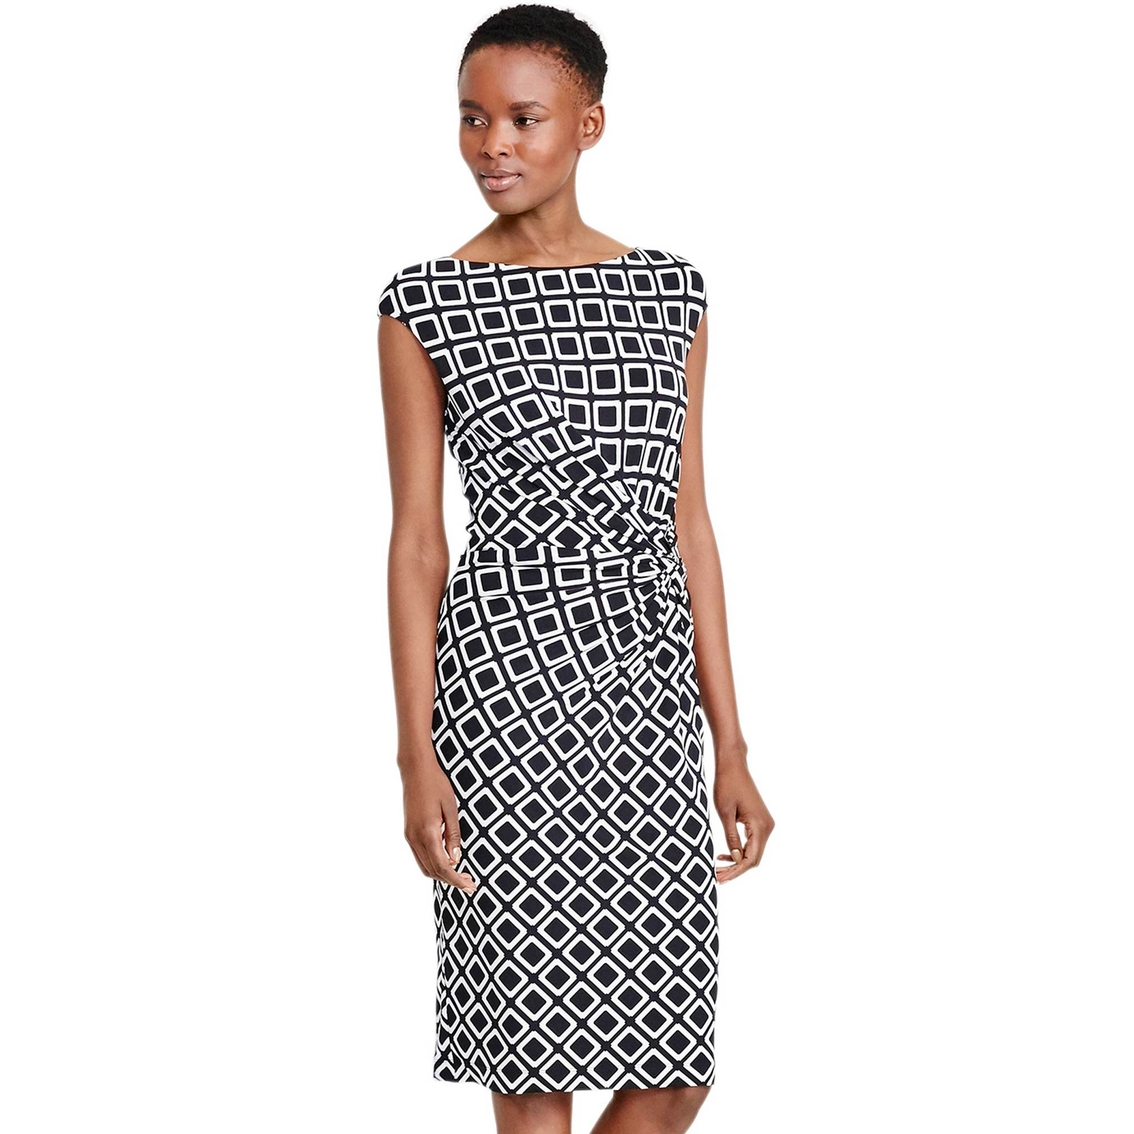 Old Lauren Ralph Lauren Geometric Print Jersey Joss Lauren Ralph Lauren Geometric Print Jersey Joss Lauren Ralph Lauren Dresses Bloomingdales Ralph Lauren Dress Shoes wedding dress Ralph Lauren Dress